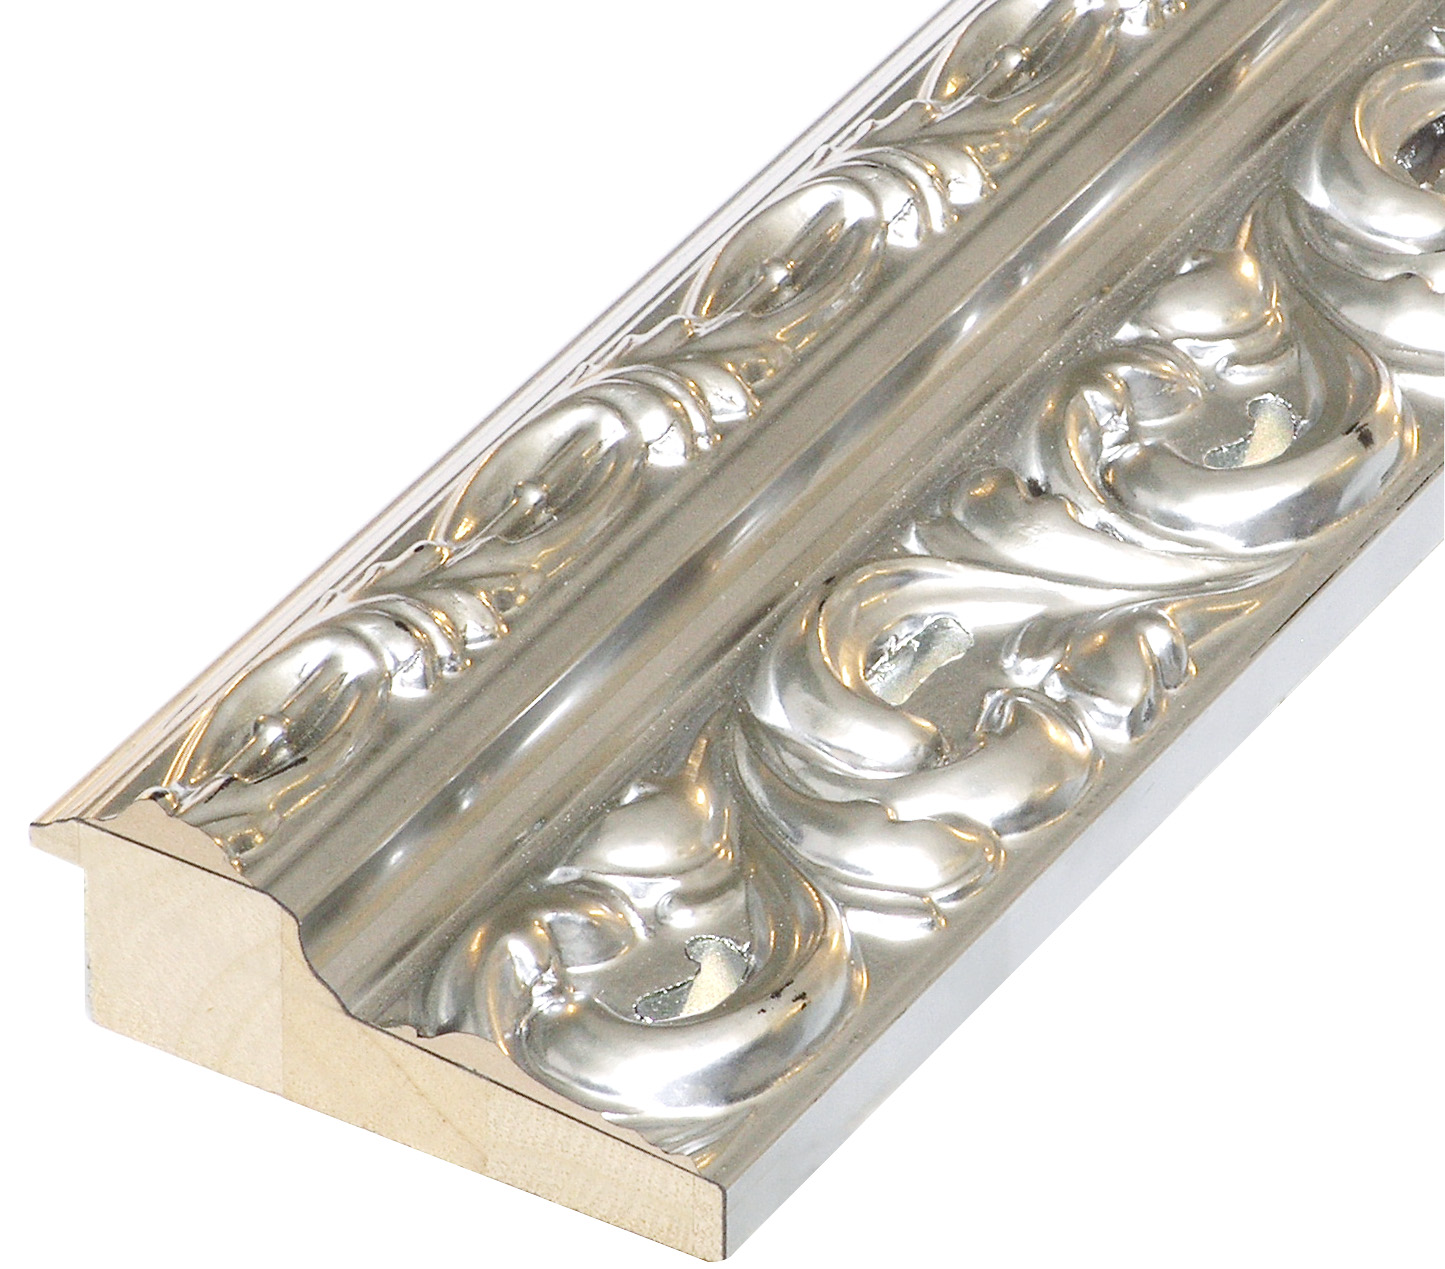 Moulding finger-joint pine Width 95mm - Silver